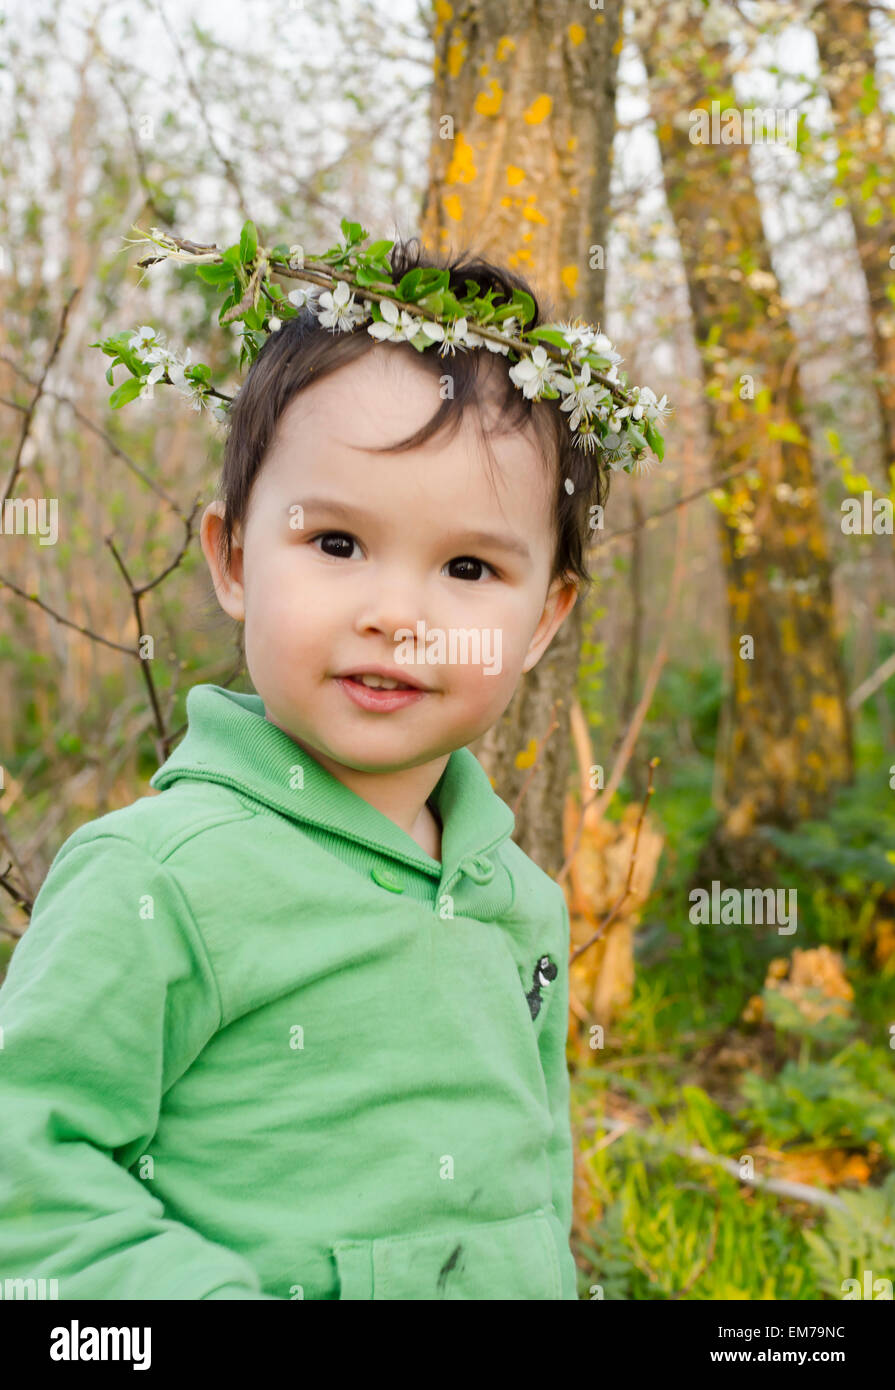 babygirl stock photos & babygirl stock images - alamy